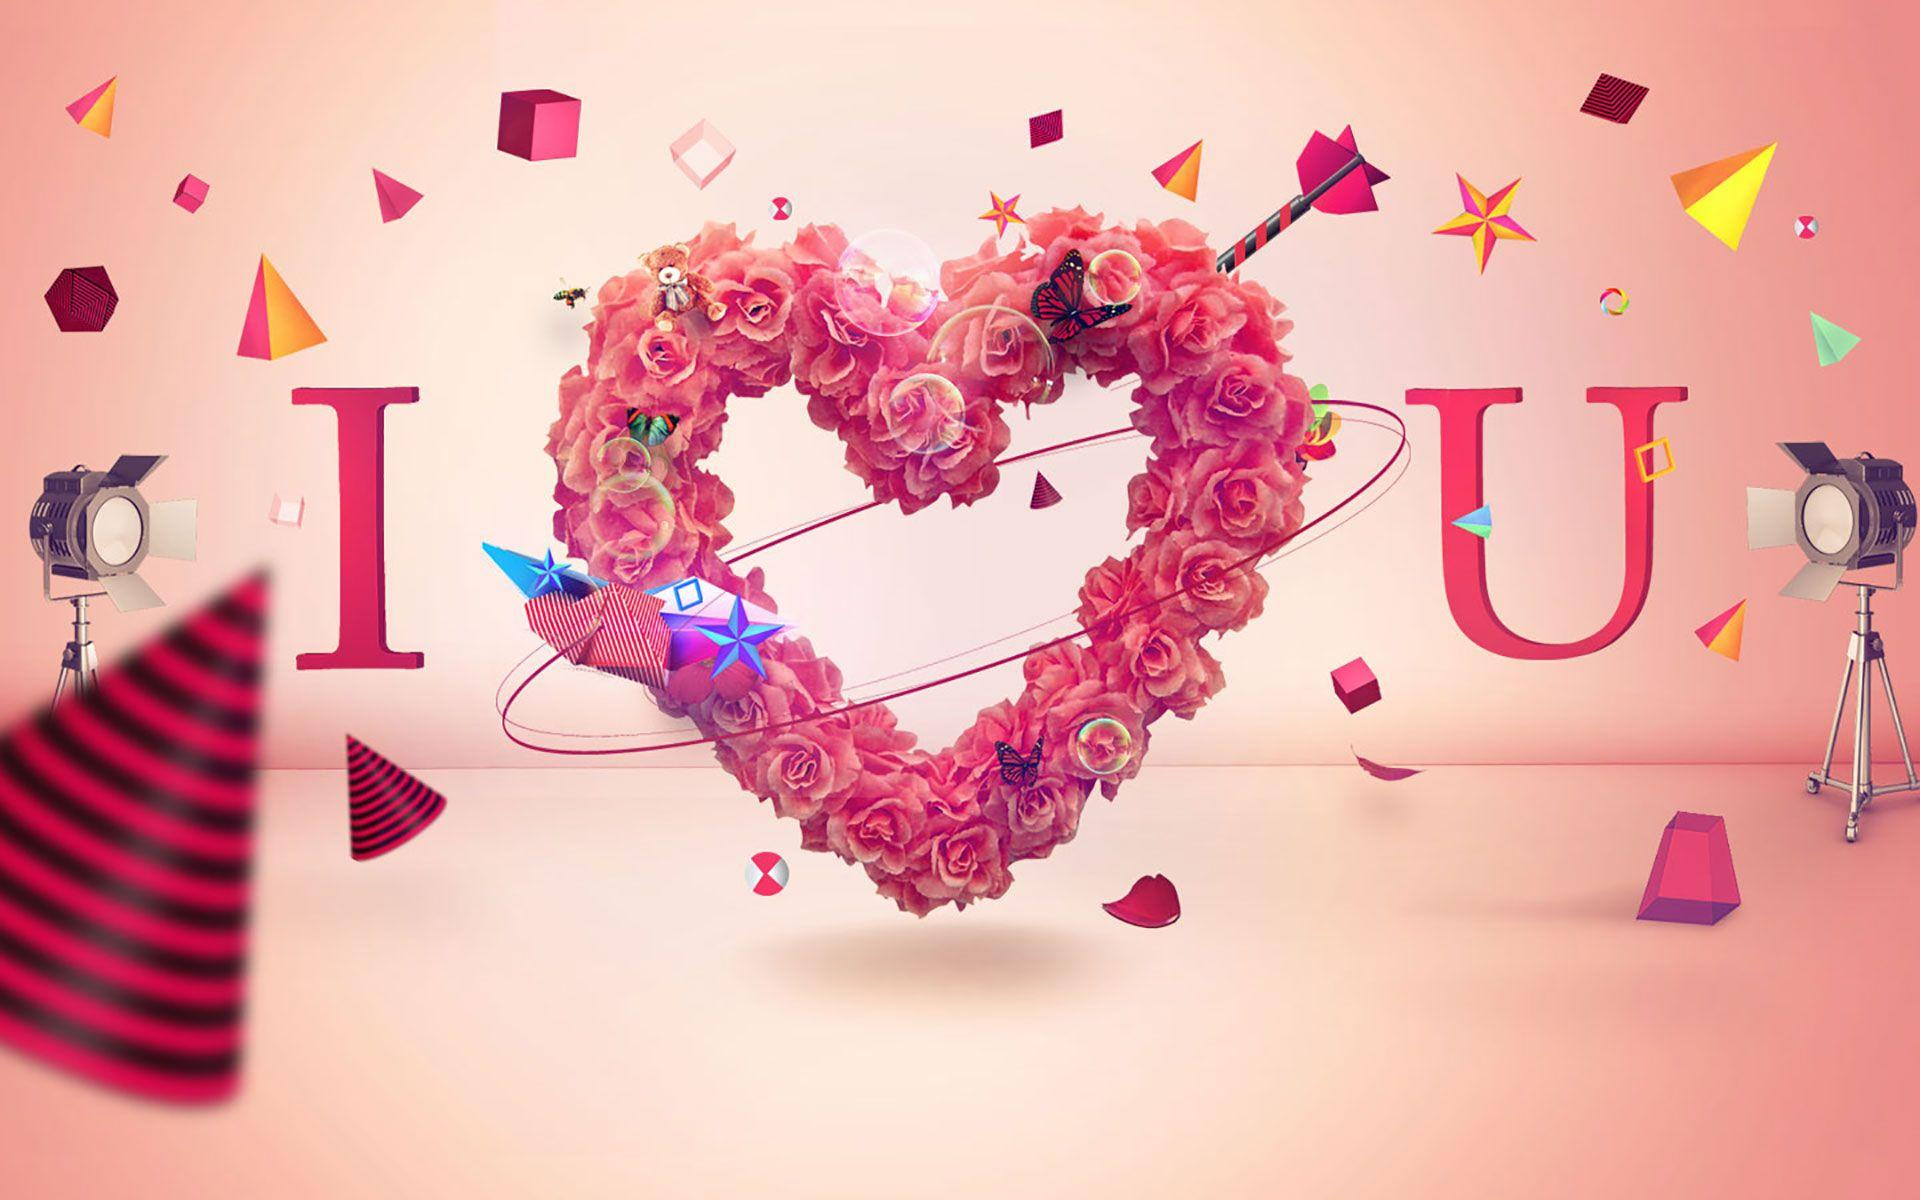 U Wallpapers Wallpaper Cave I think i'm in love with you. u wallpapers wallpaper cave